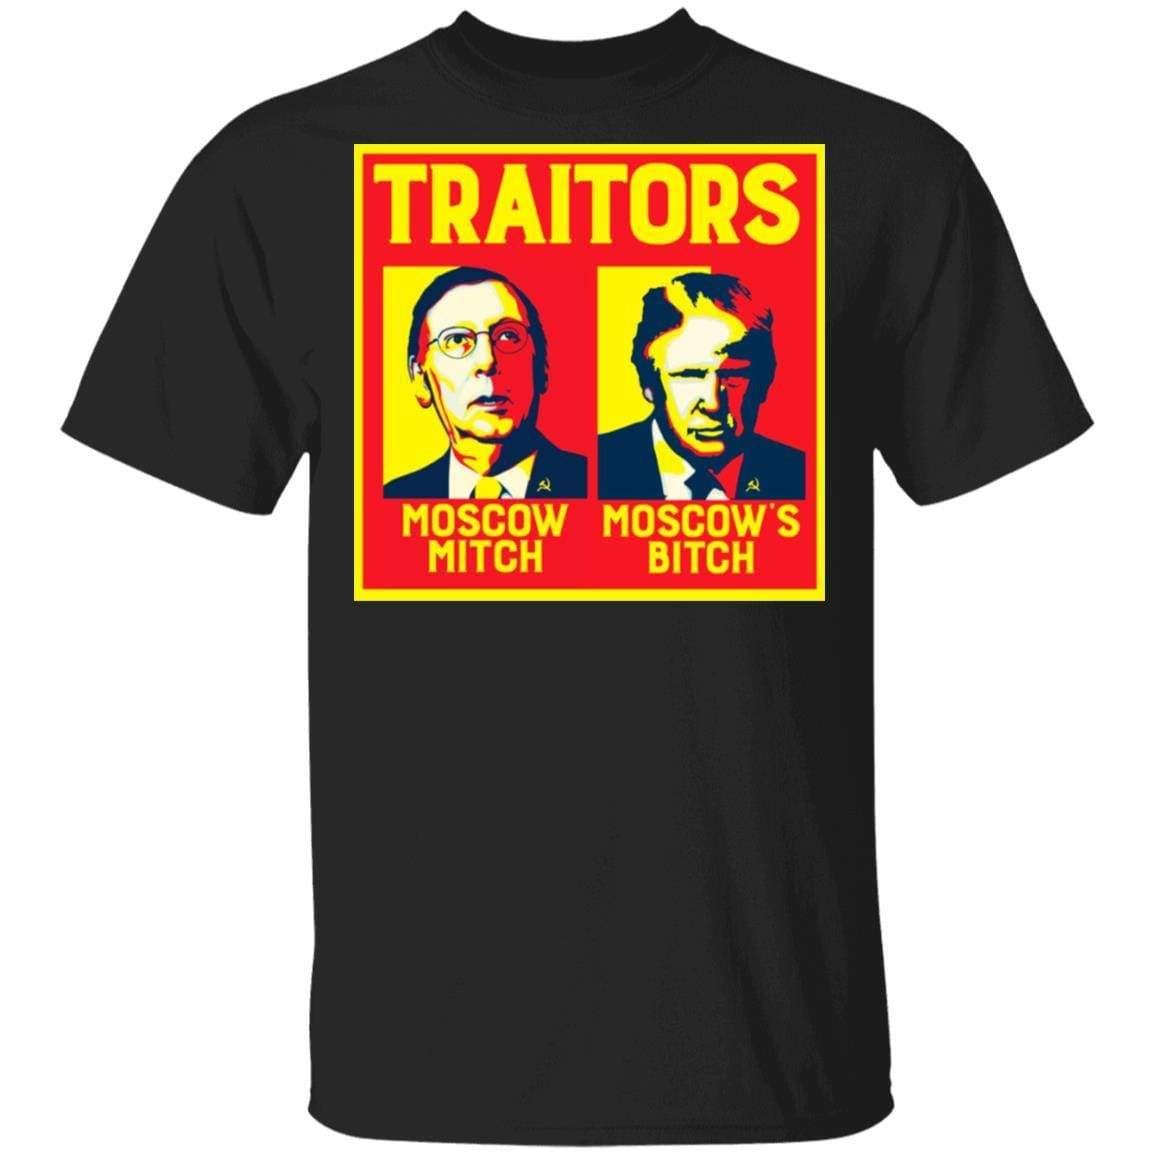 Traitors Ditch Moscow Mitch T-Shirts, Hoodies 1049-9953-86854330-48144 - Tee Ript